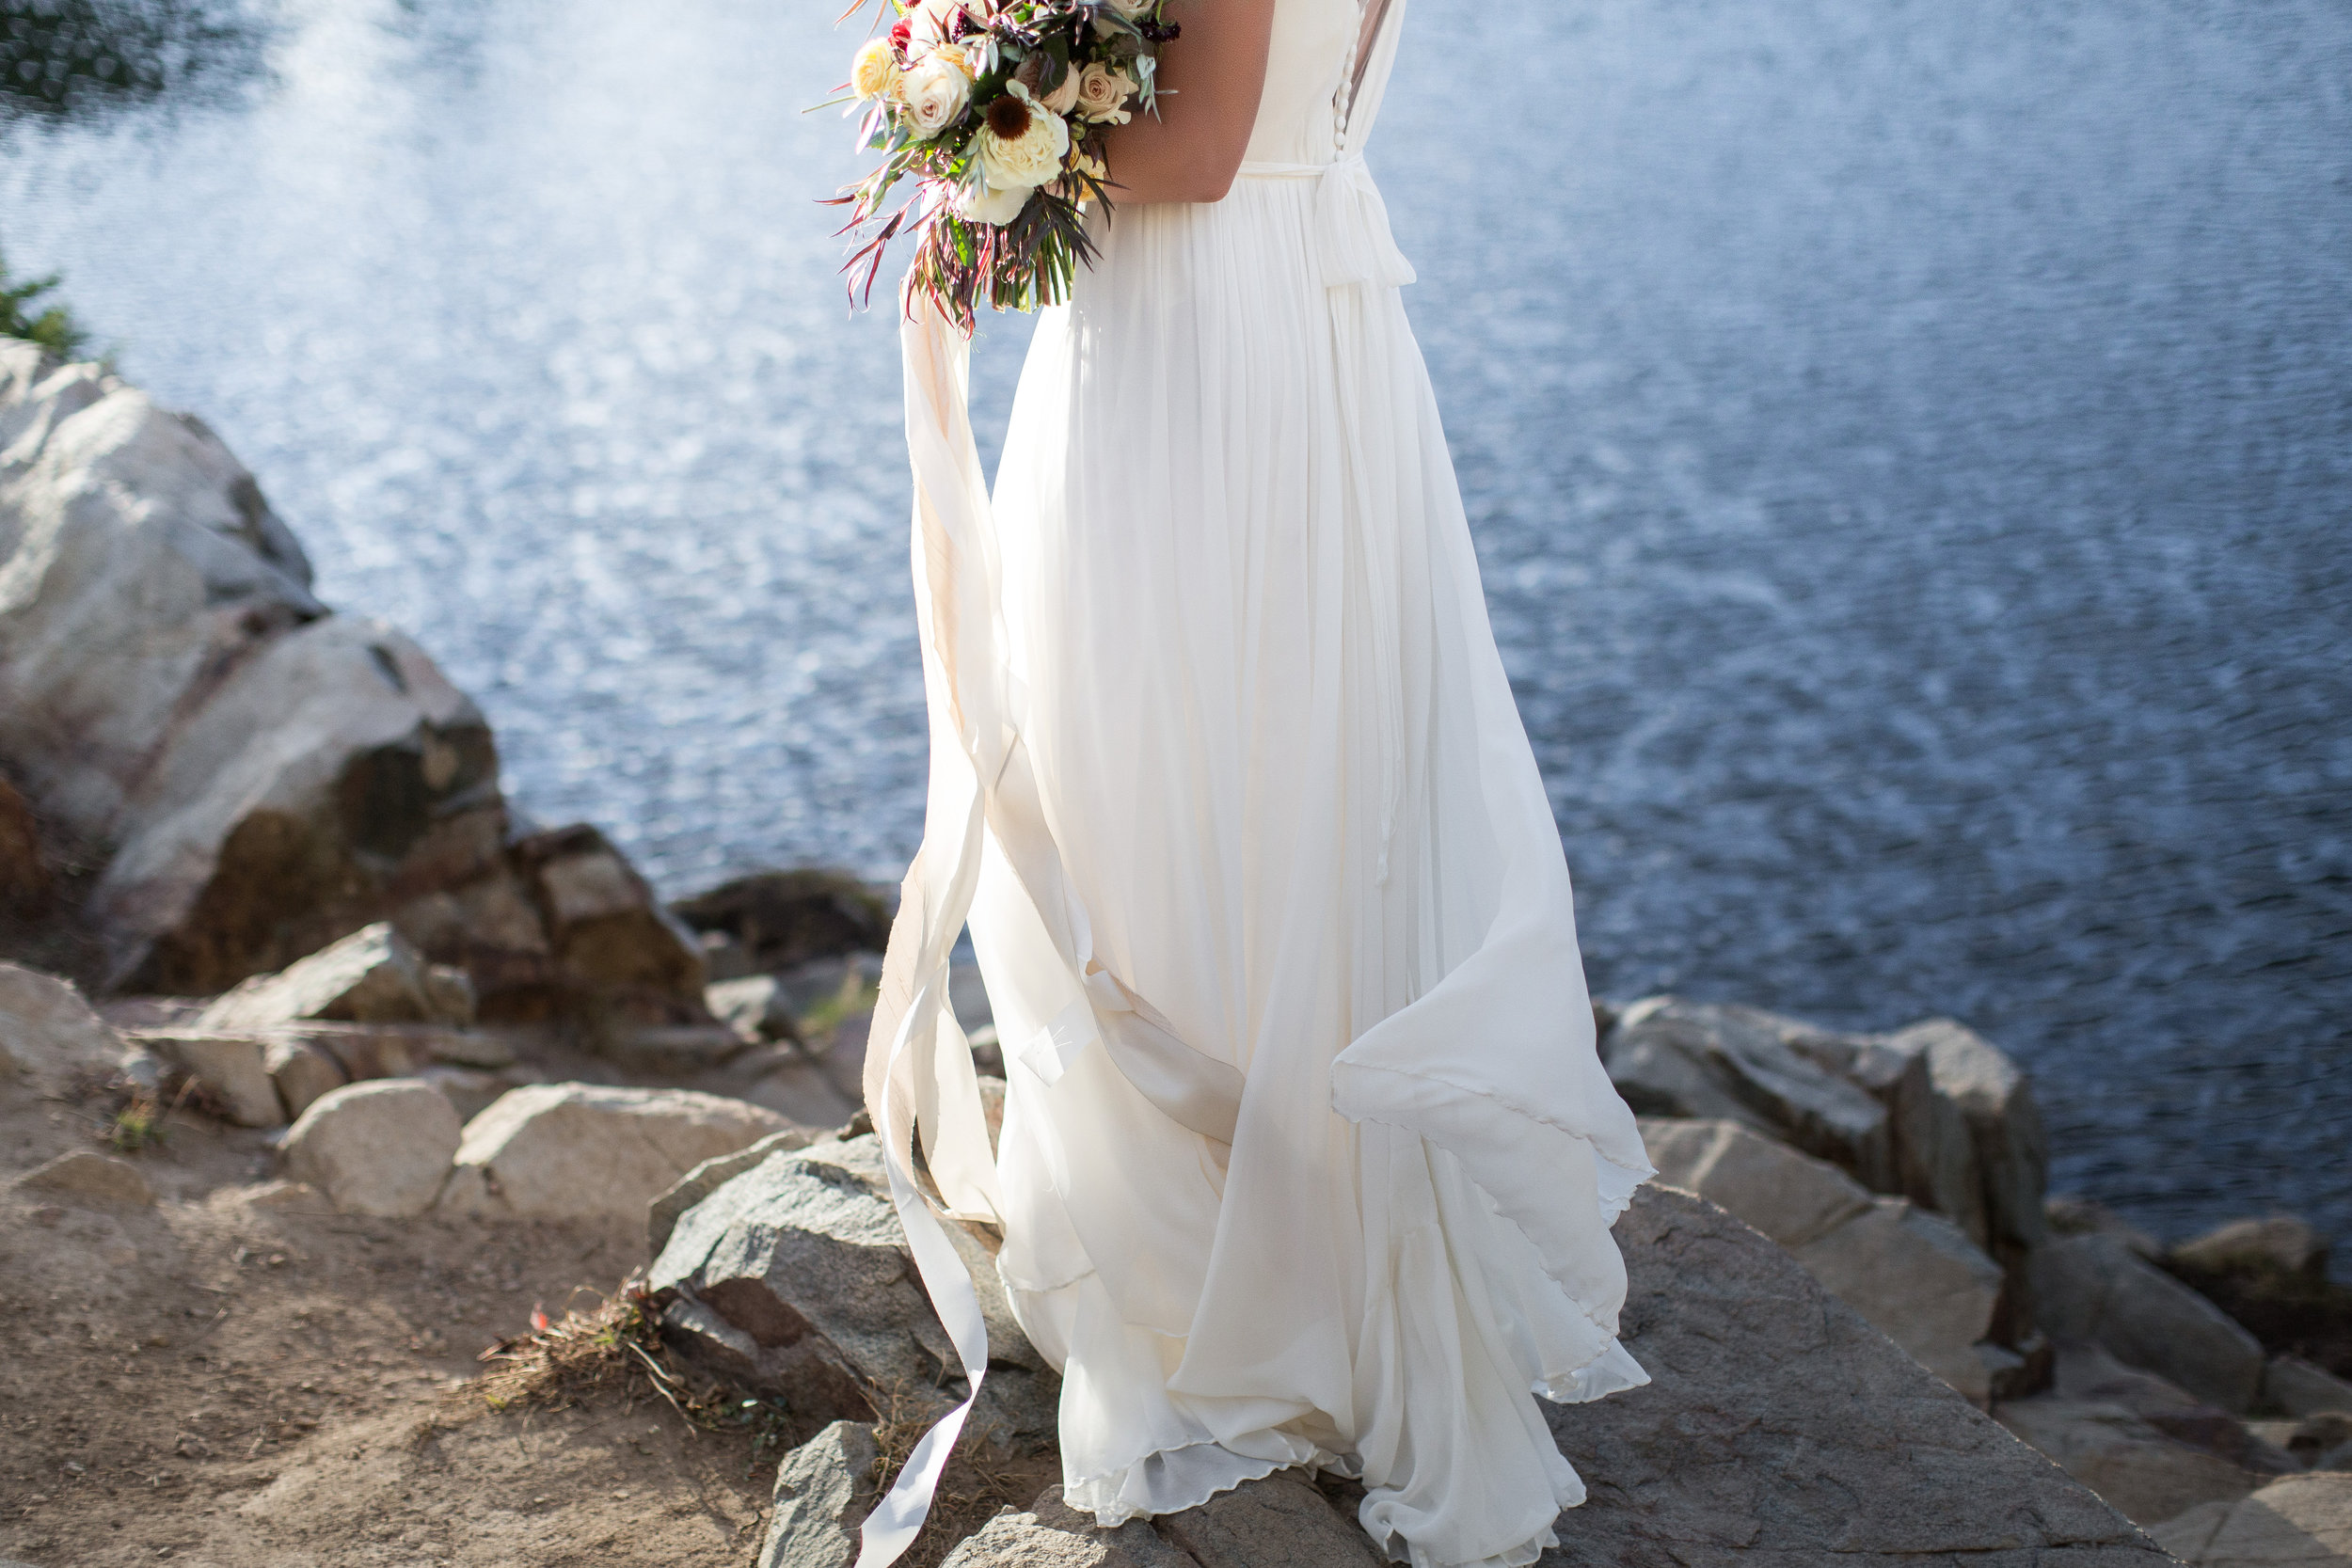 UtahValleyBrideShootTR2016 (89 of 110).jpg